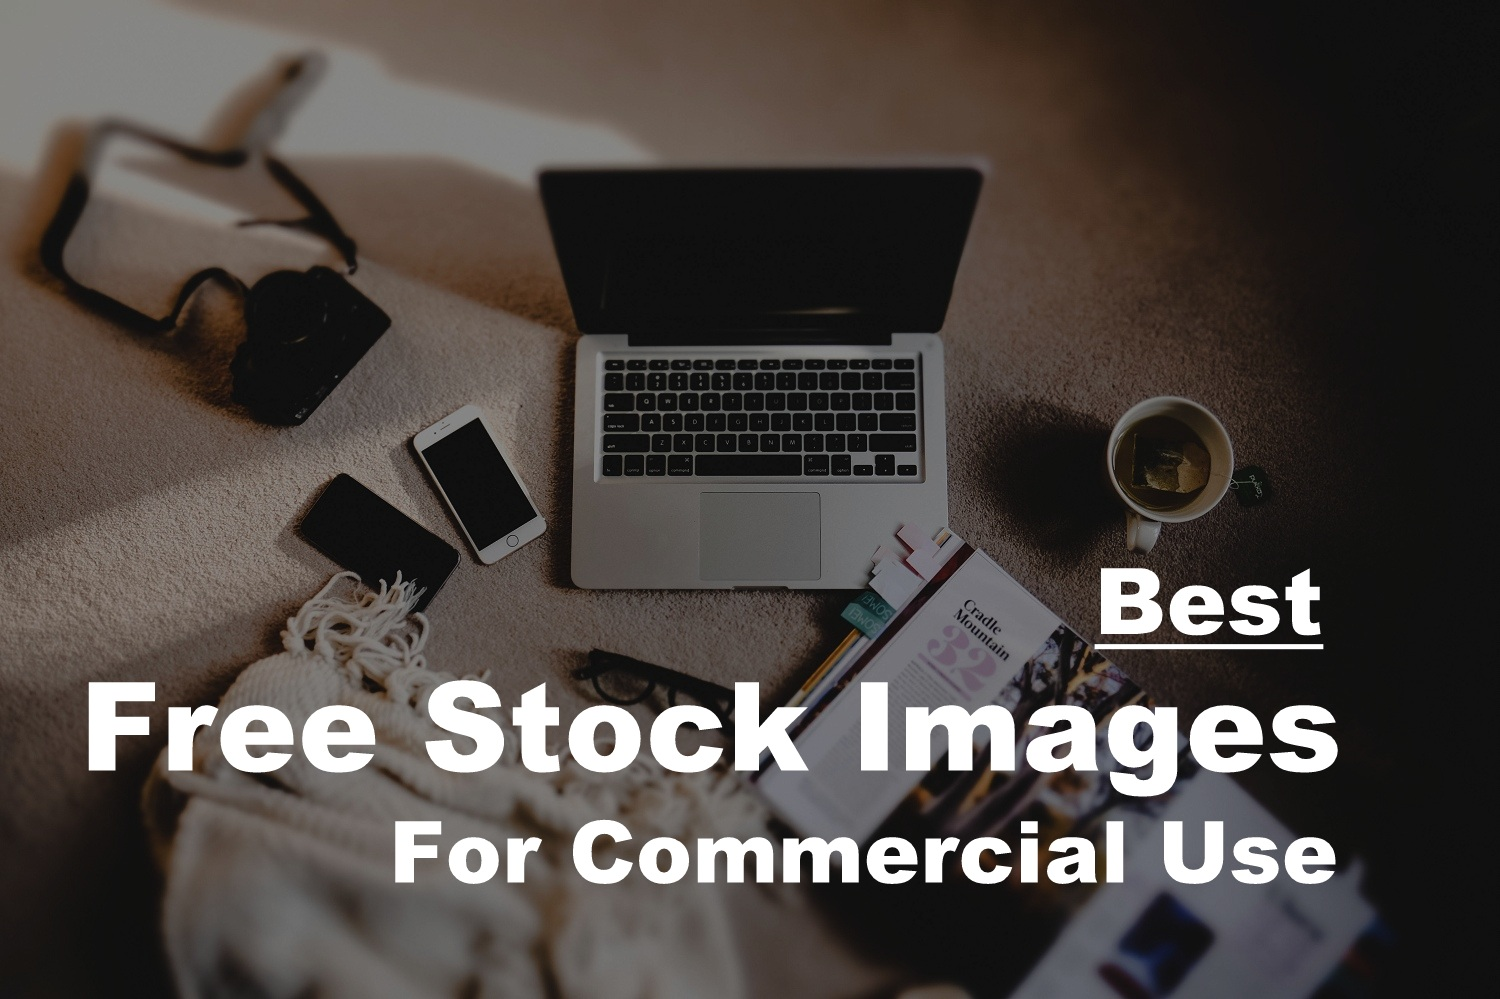 12 Sites To Get royalty free images for commercial use